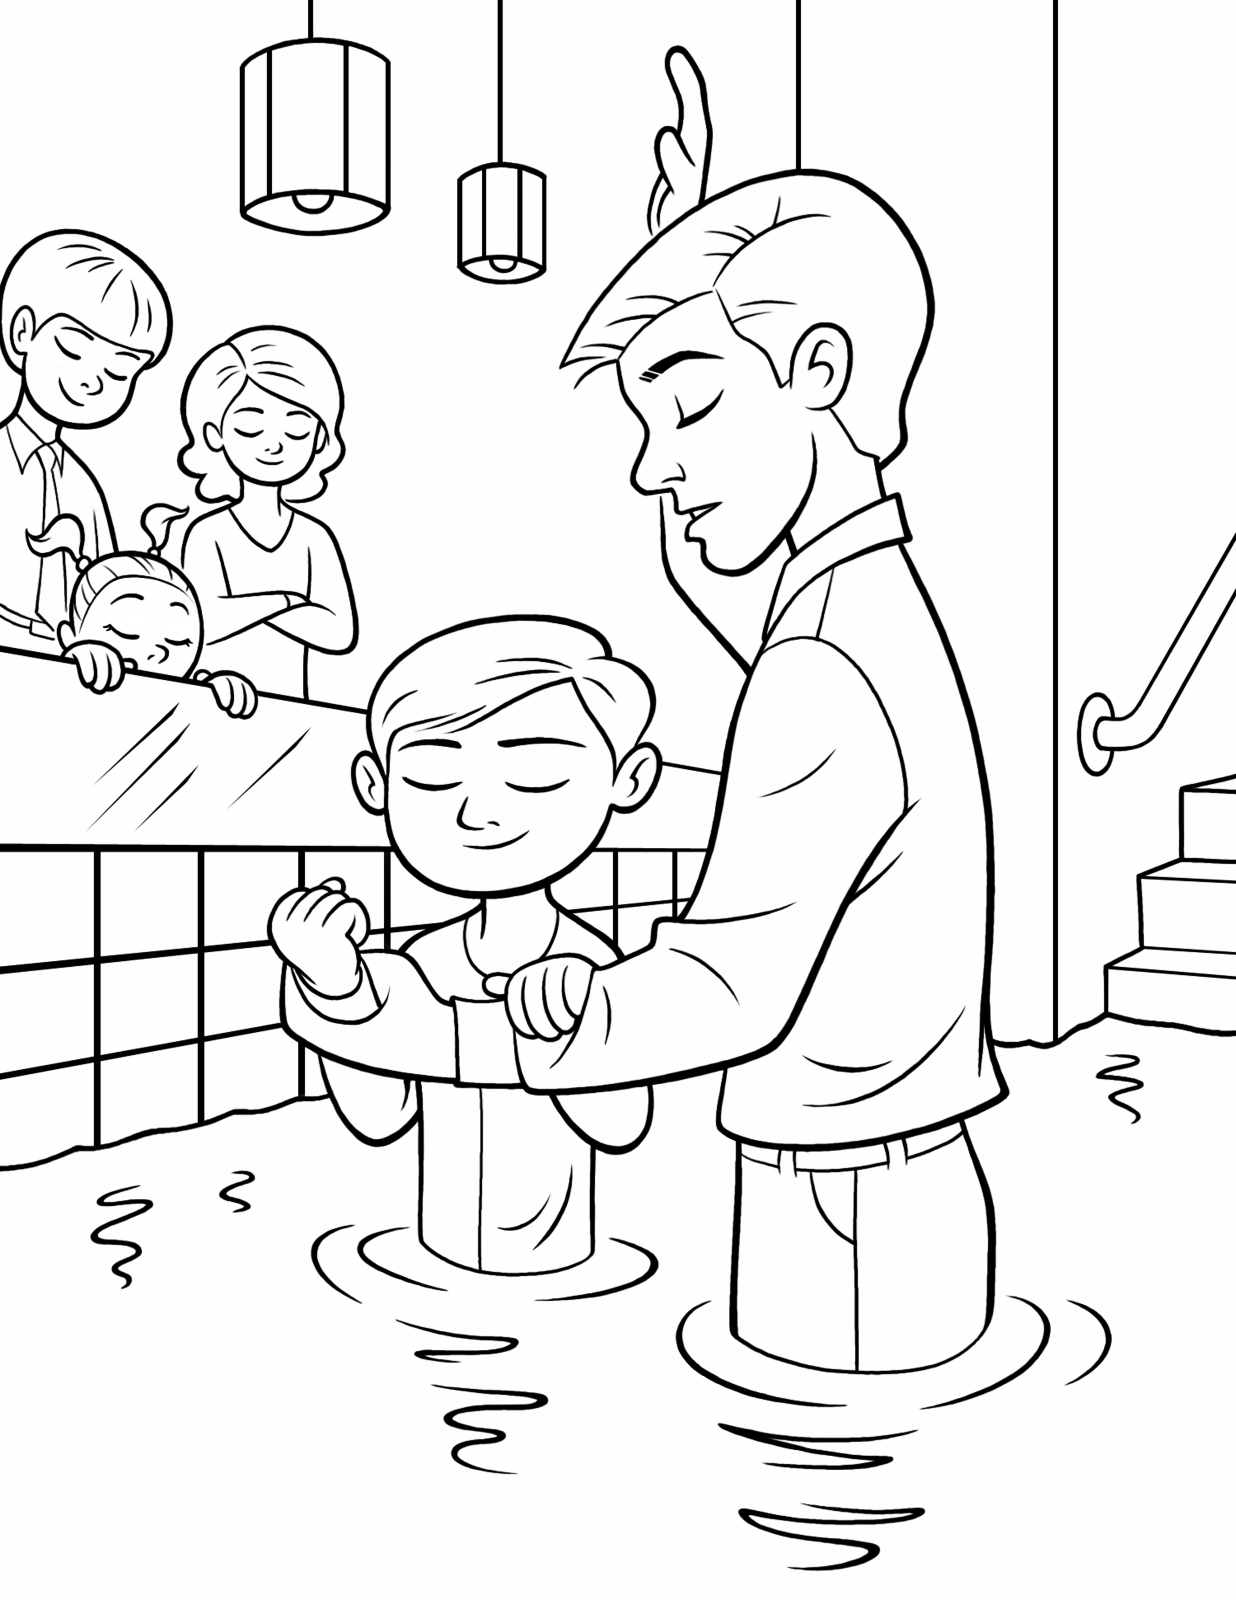 baptism coloring pages - photo#6